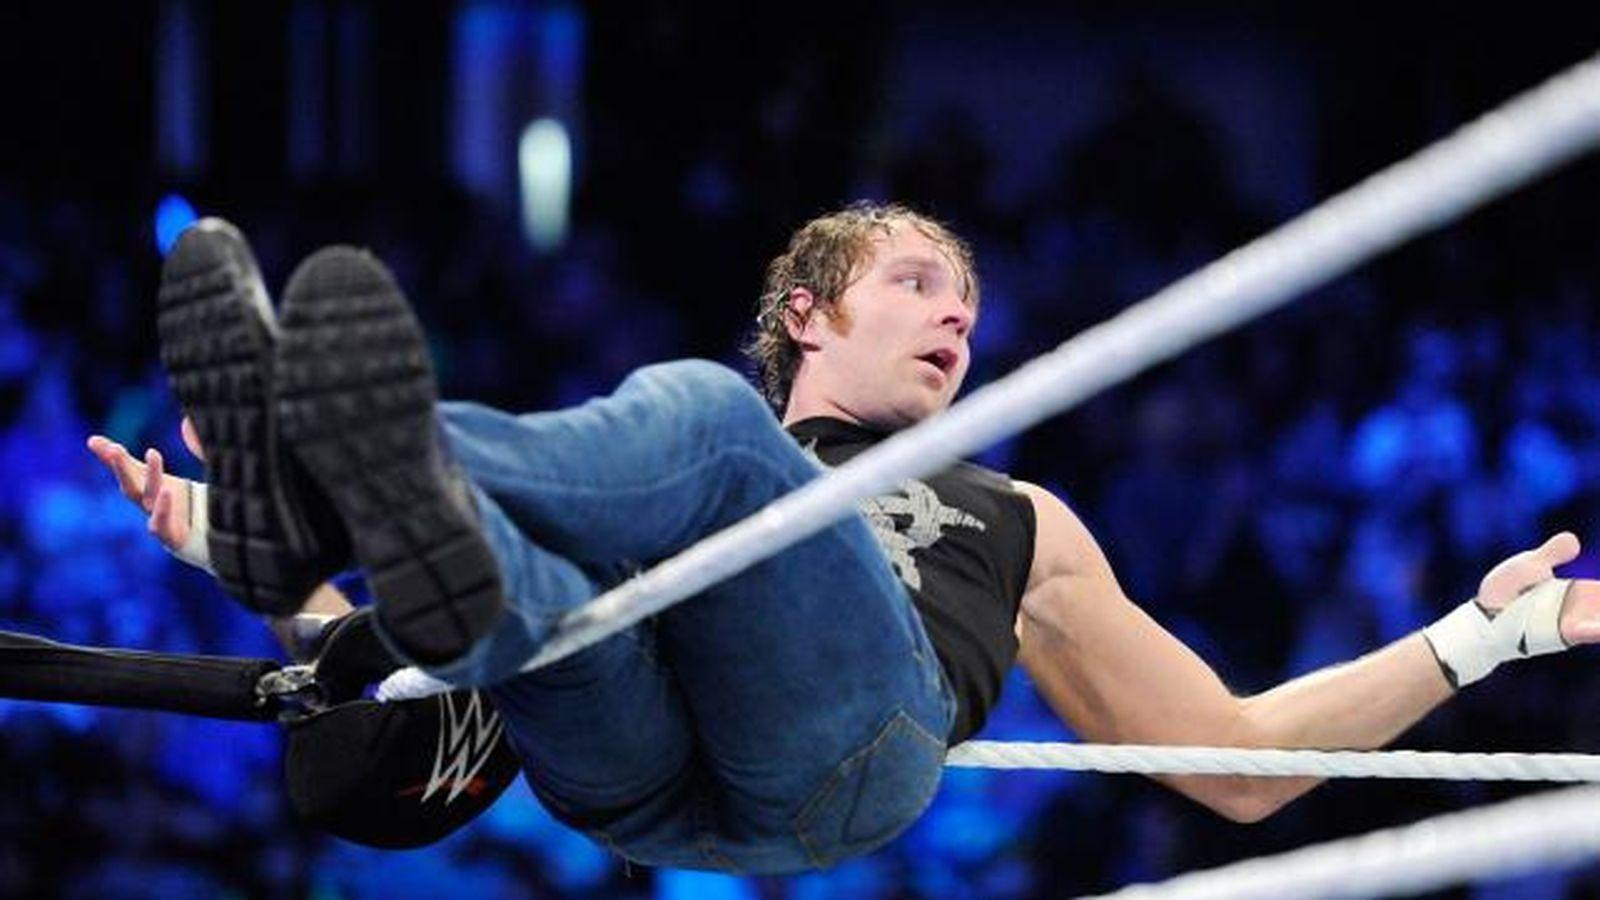 Dean Ambrose Wallpapers 2017 whb 6